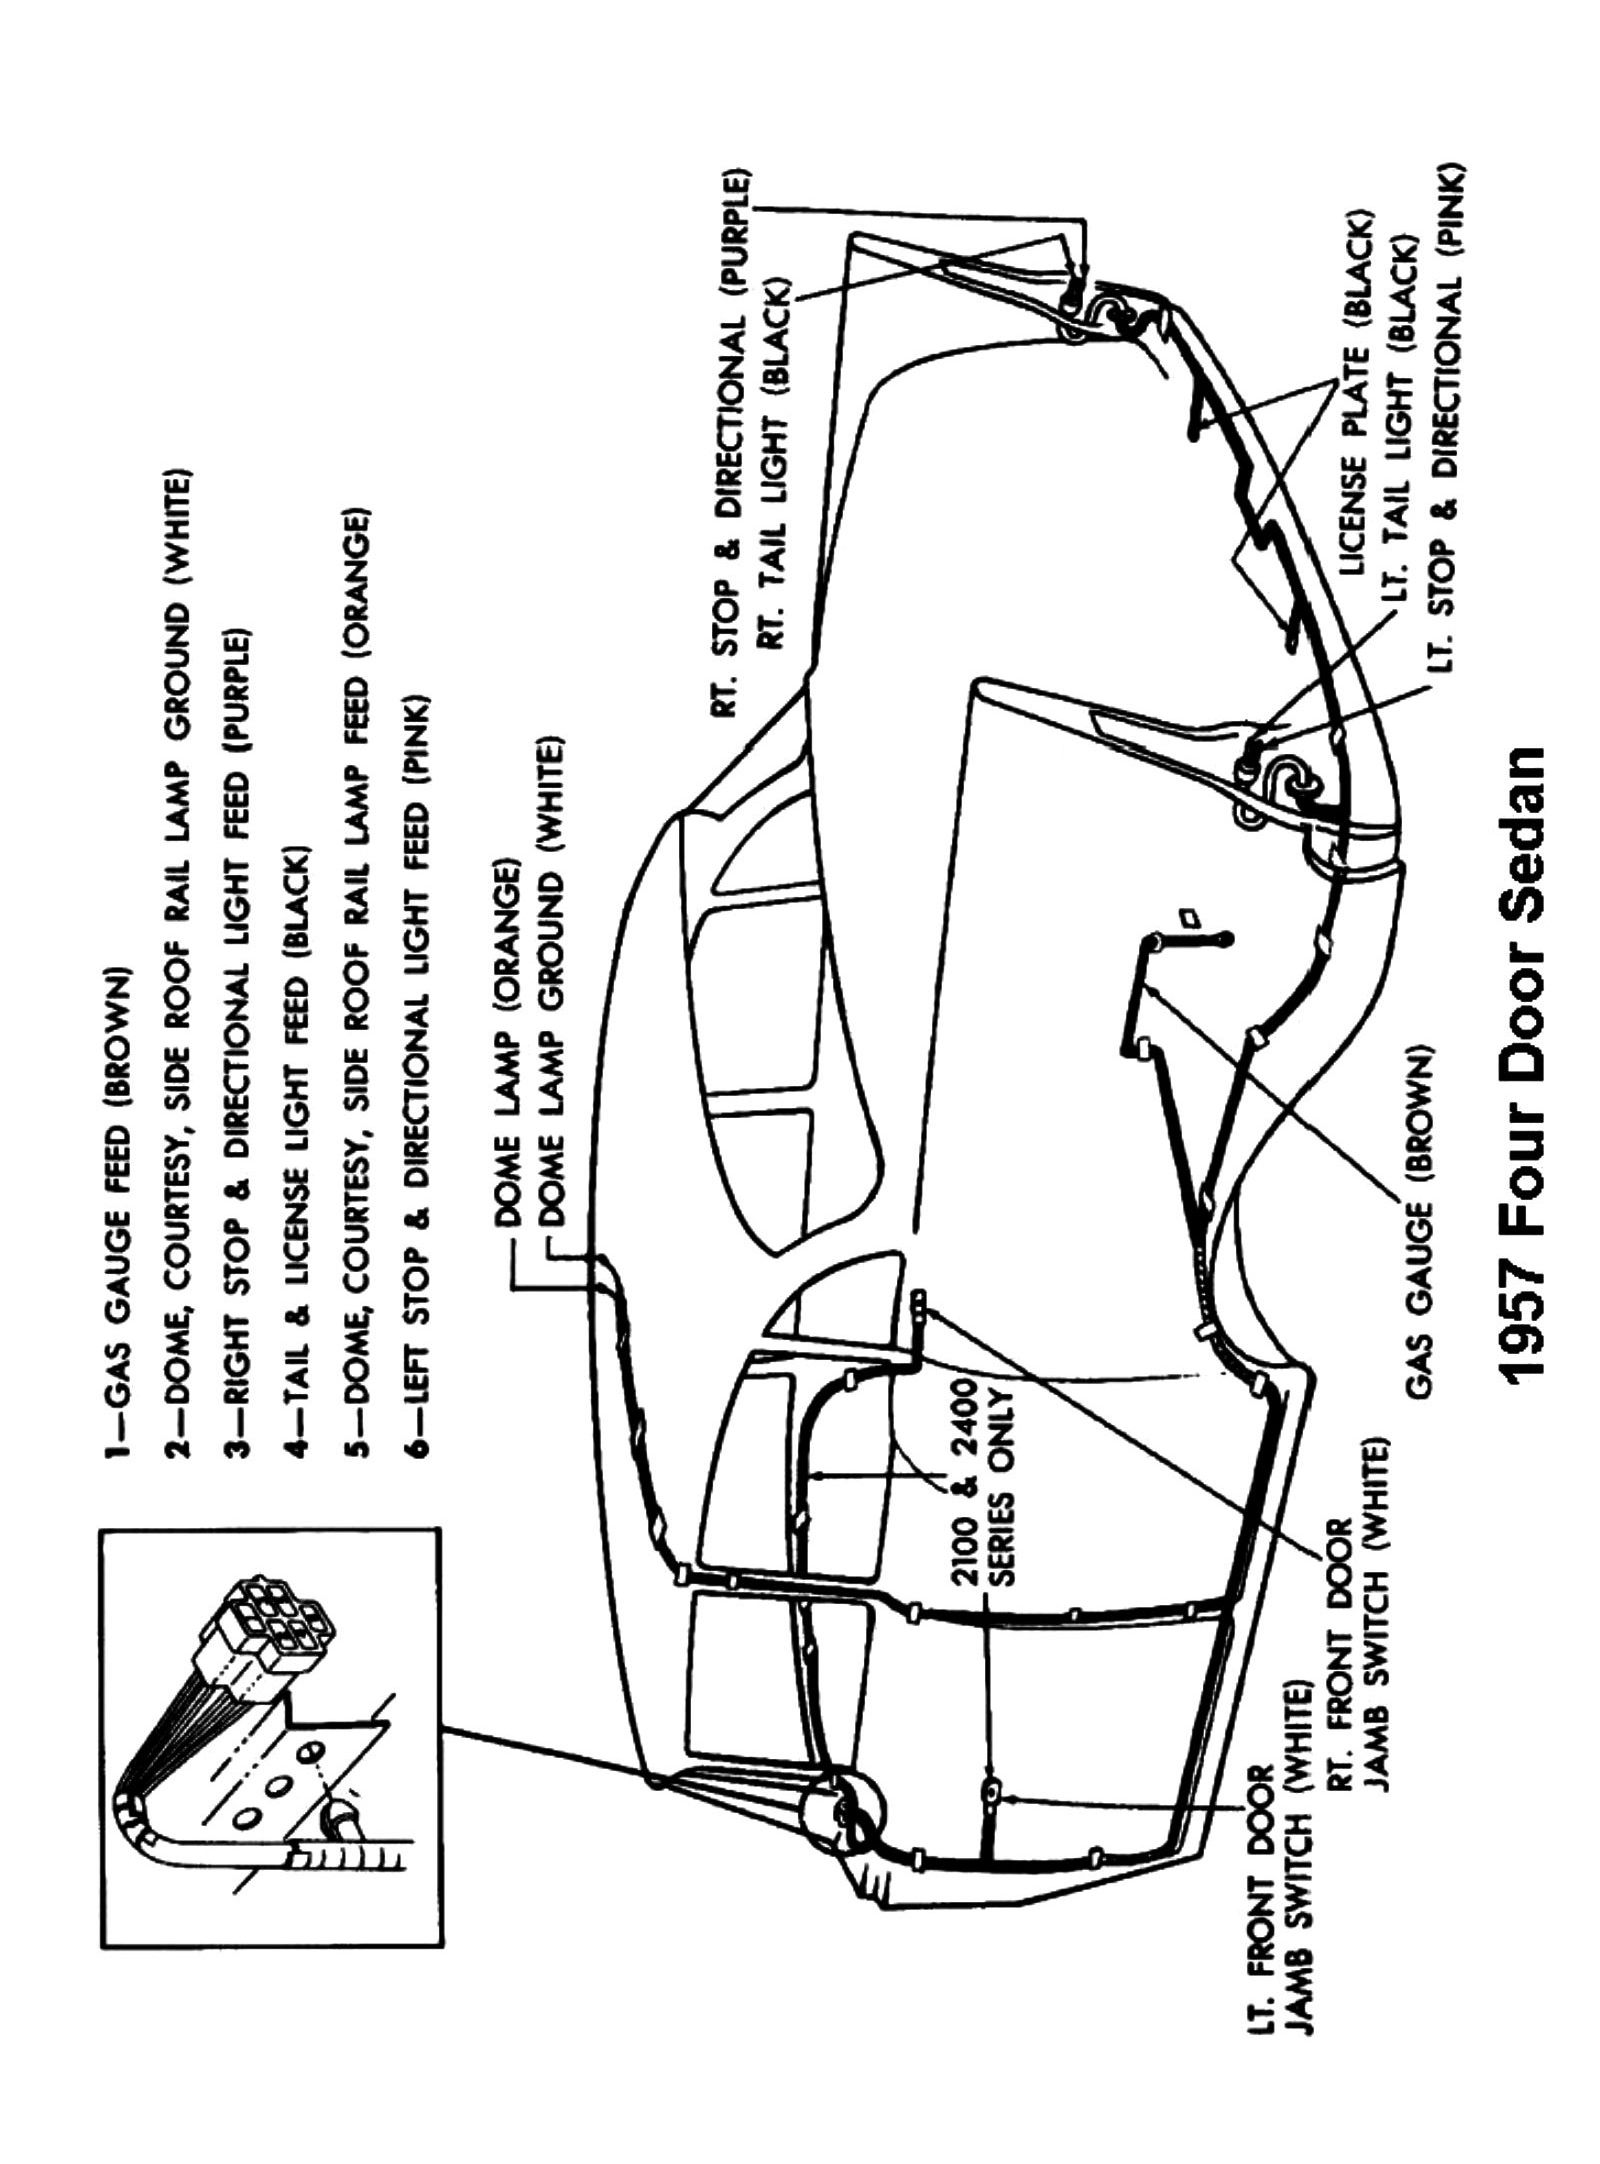 1957 Sedan 4-door Body Wiring